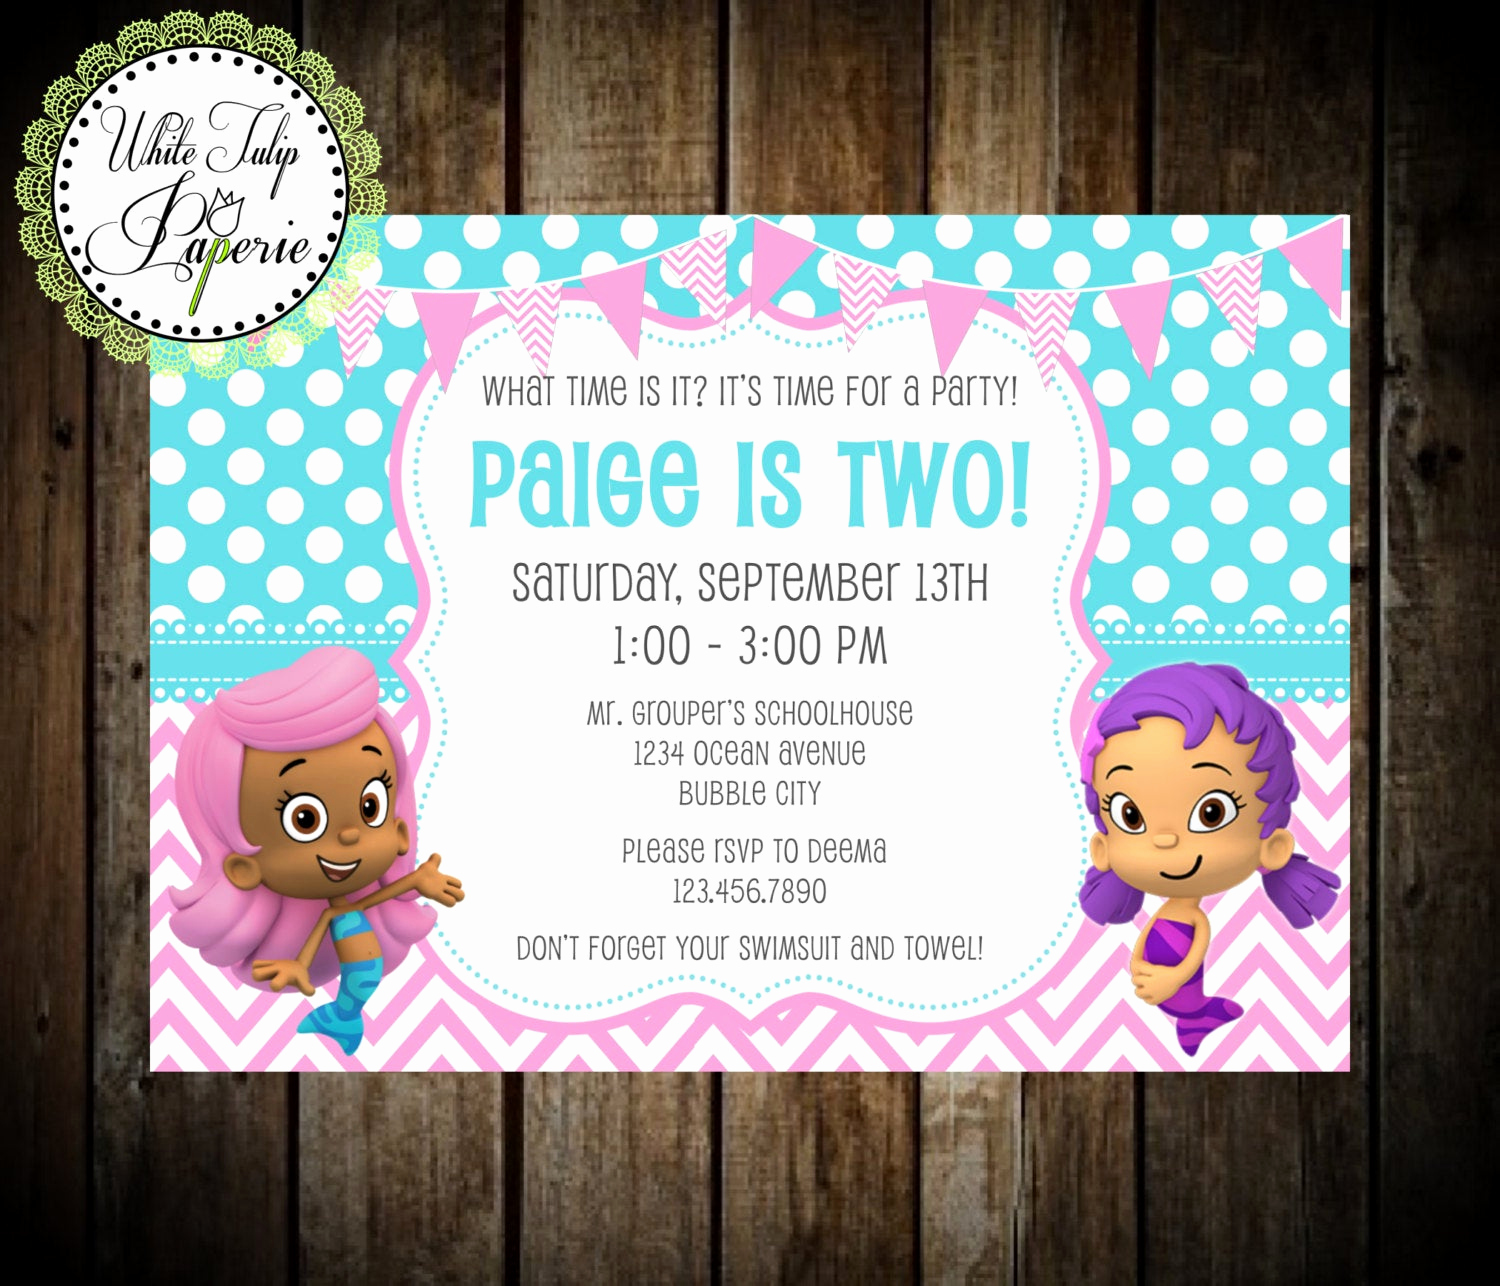 Bubble Guppies Invitation Template Free Inspirational Bubble Guppies Invitation Bubble Guppies by Whitetulippaperie